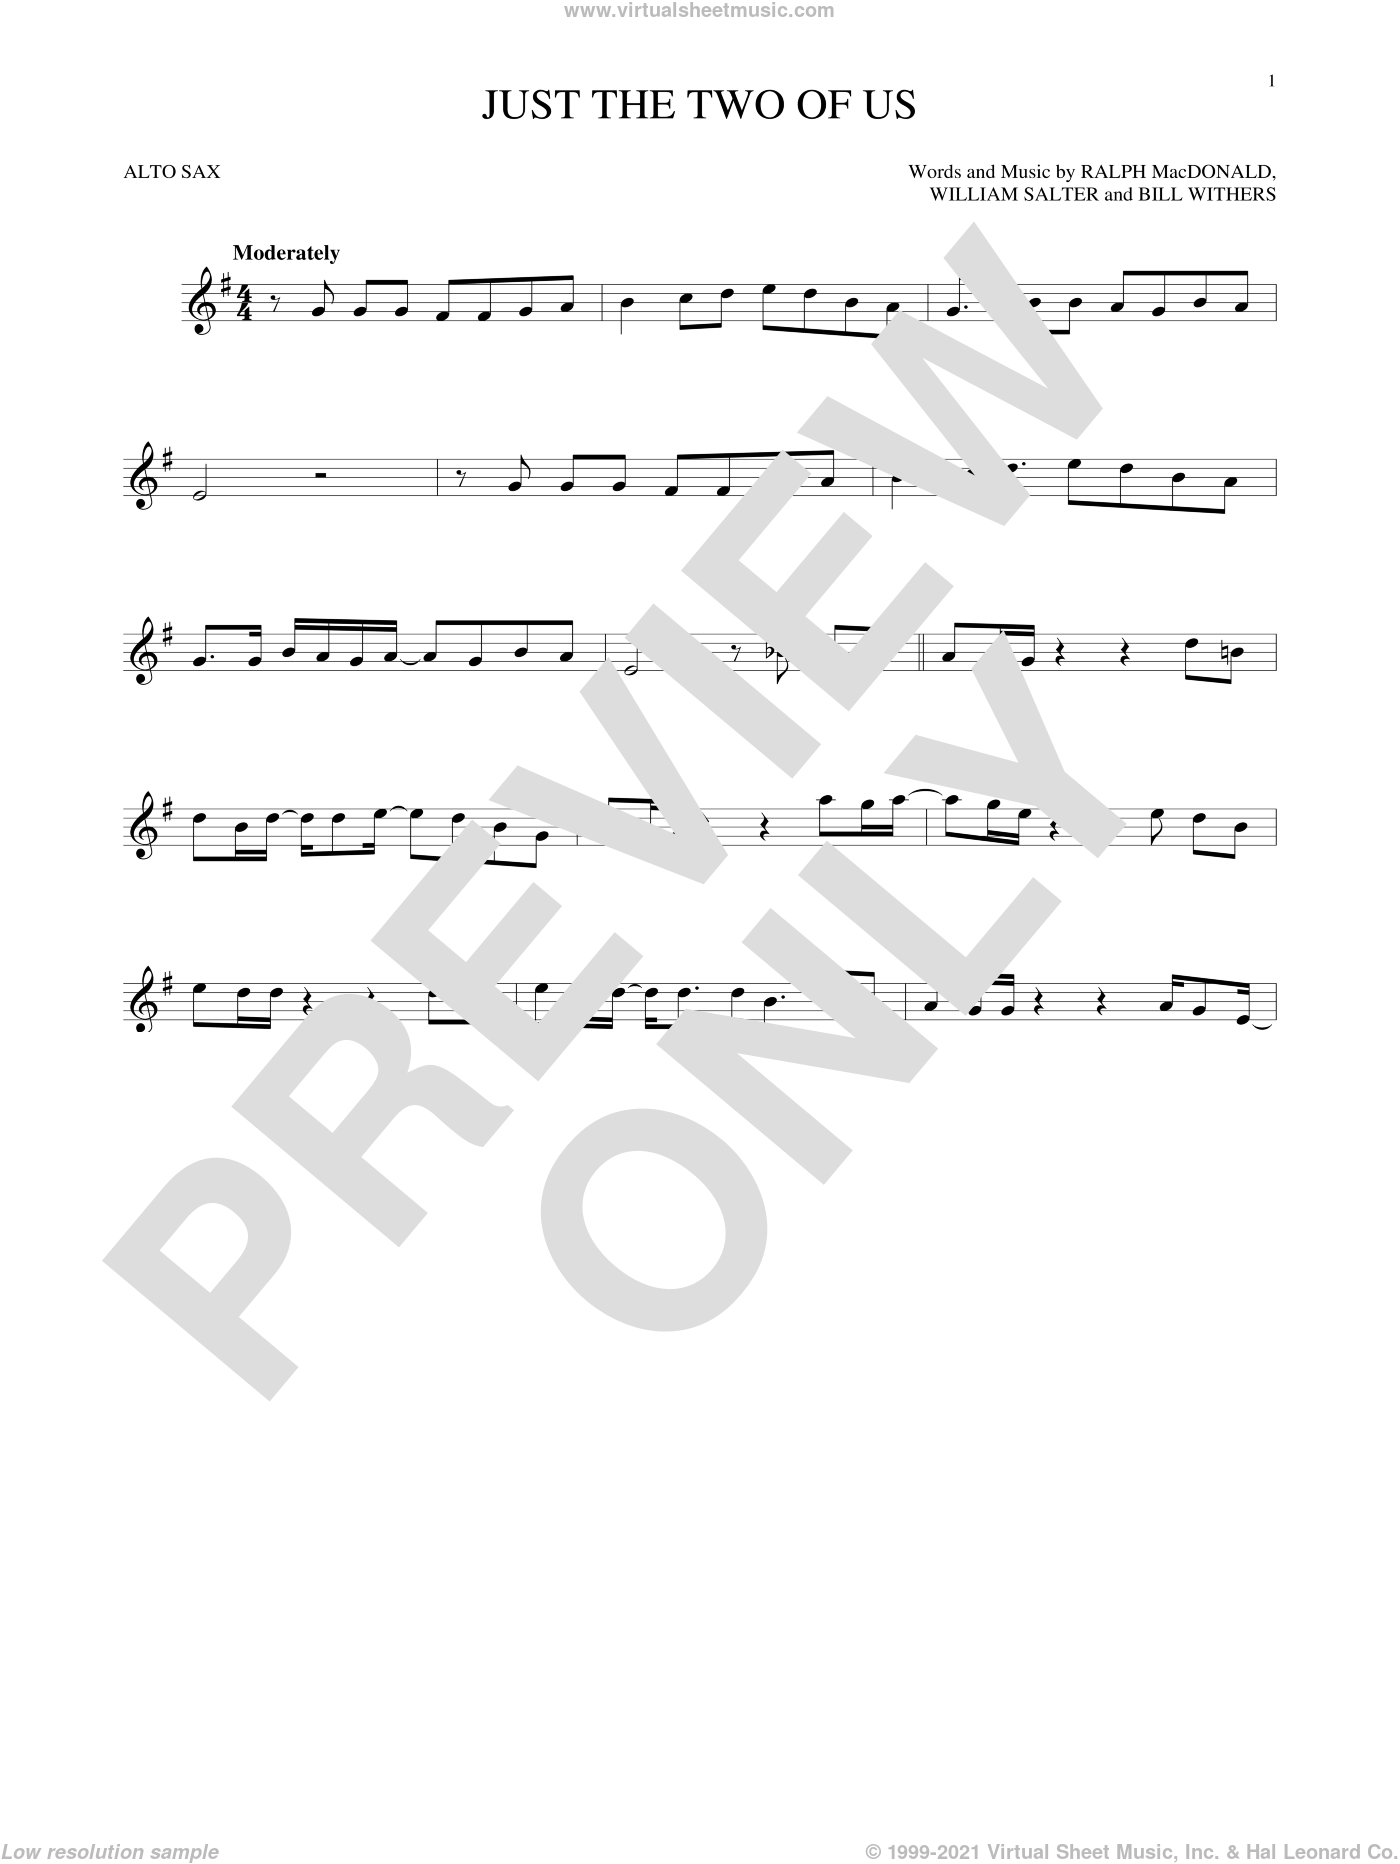 Just The Two Of Us sheet music for alto saxophone solo by Bill Withers, intermediate skill level